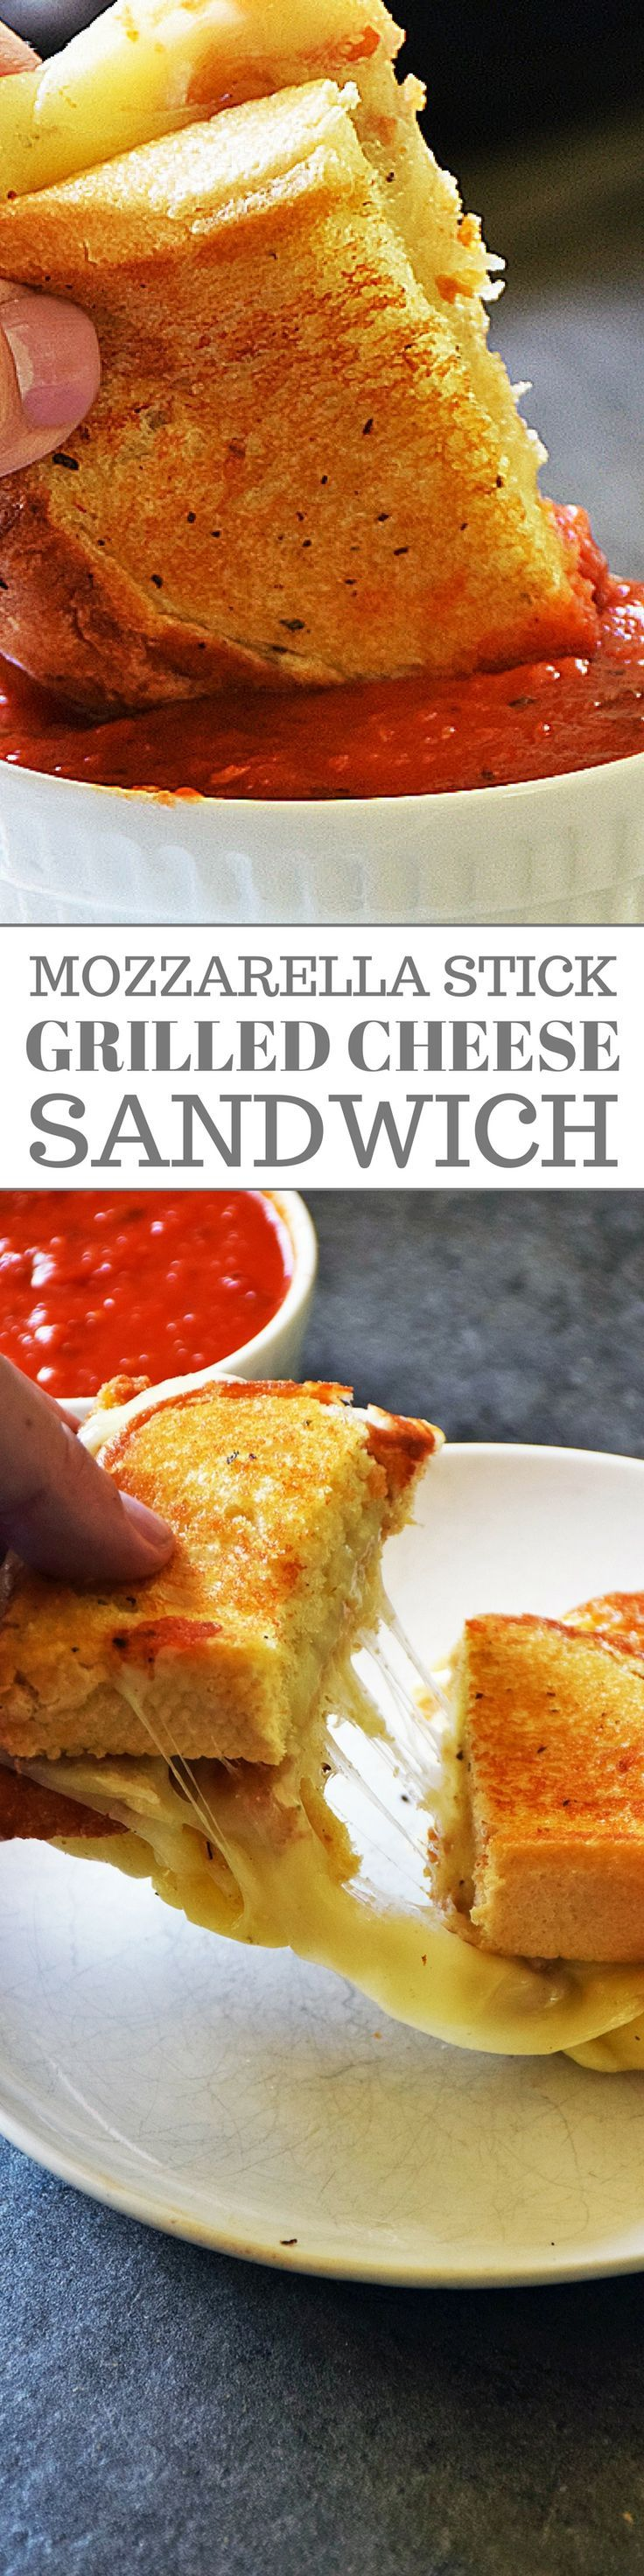 Mozzarella Stick Grilled Cheese Sandwich is having your appetizer and main dish all in one. This easy sandwich recipe is loaded with fried mozzarella sticks and extra mozzarella cheese between 2 pieces of garlic Texas toast and then grilled to golden perfection. Definitely worth the indulgence every once in a while.